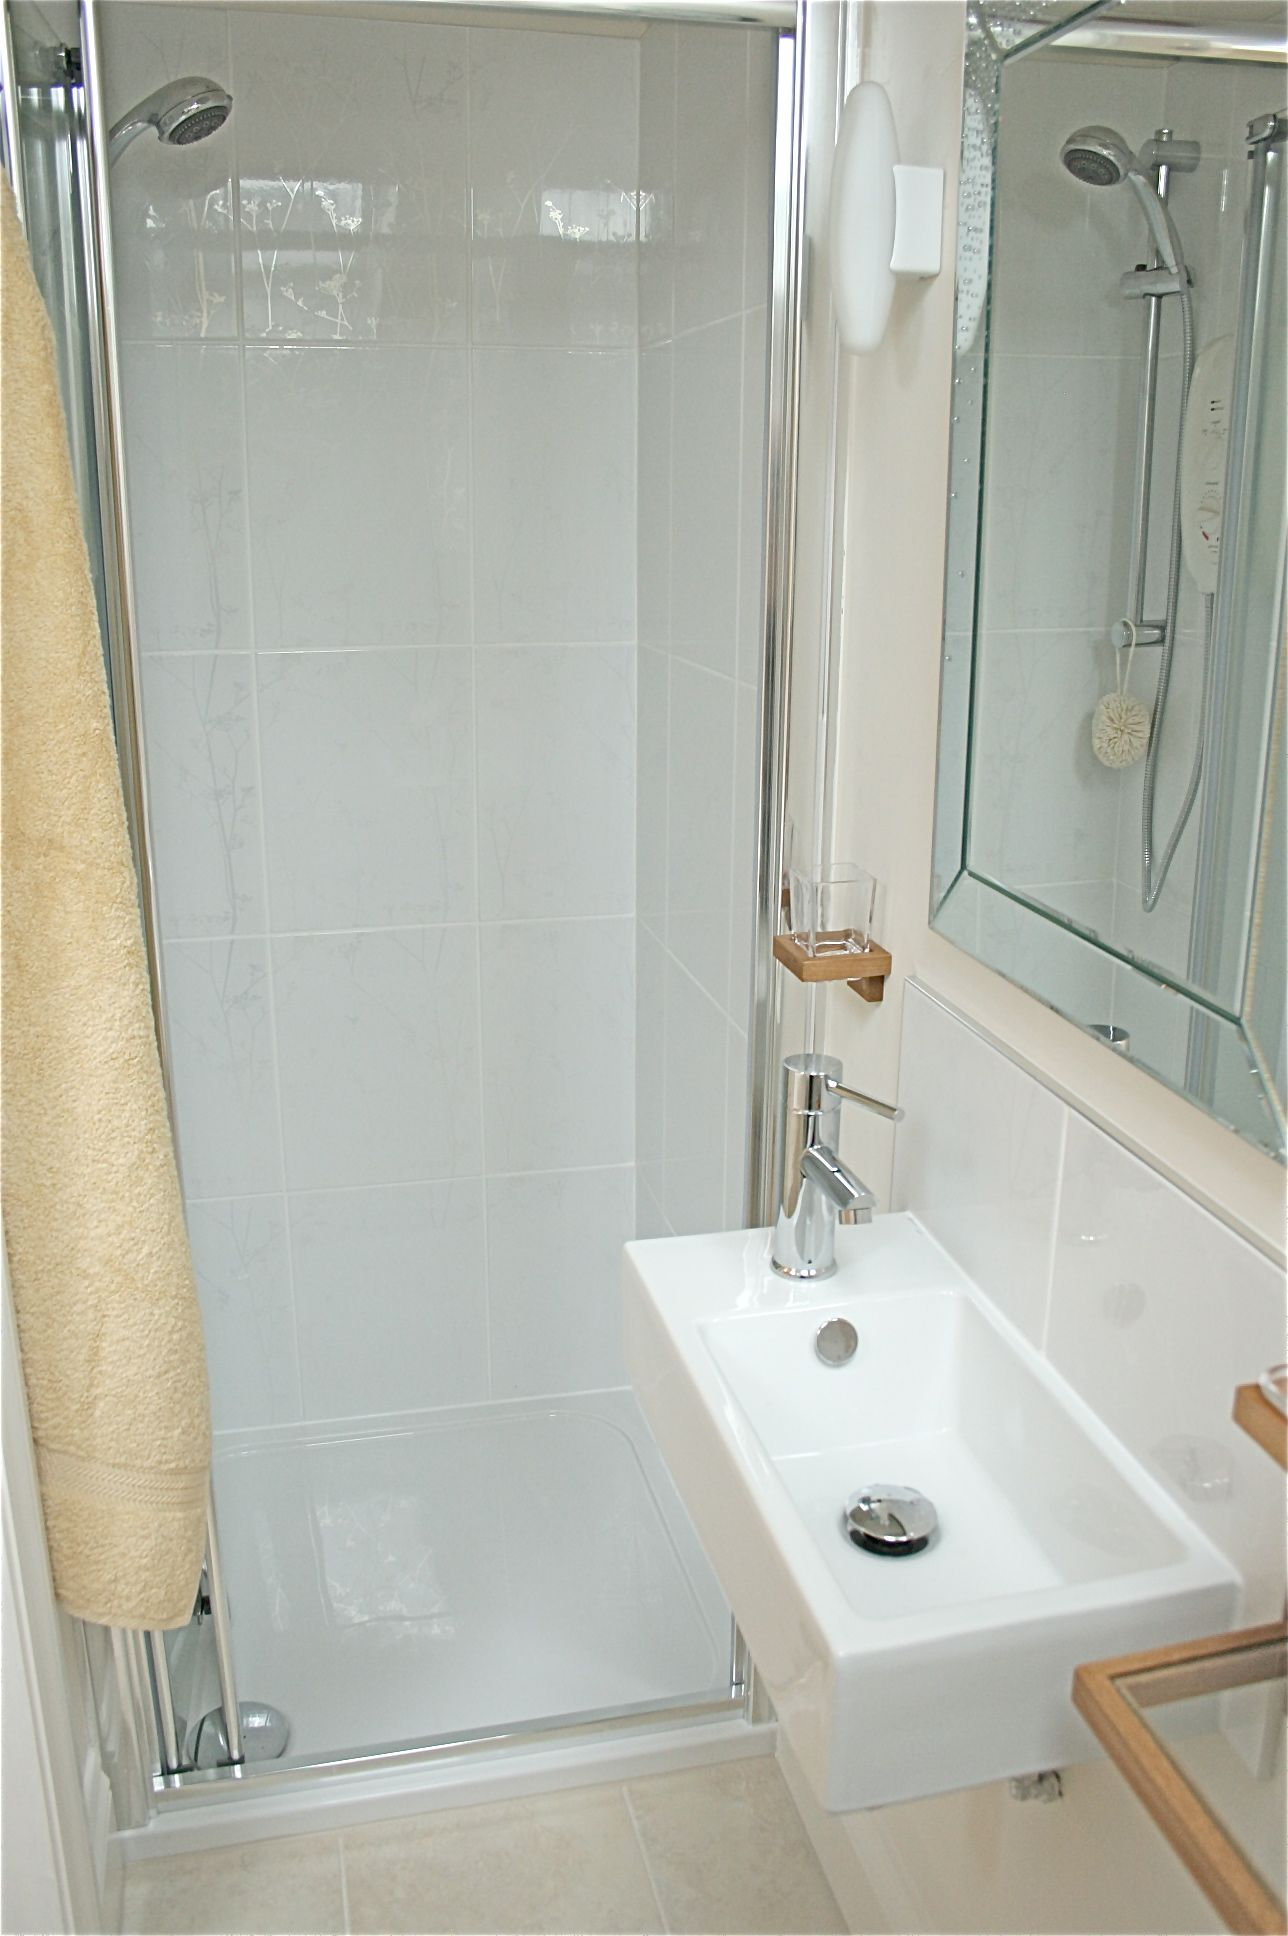 Very Small Bathroom Arragement Idea With Narrow Shower And White ...